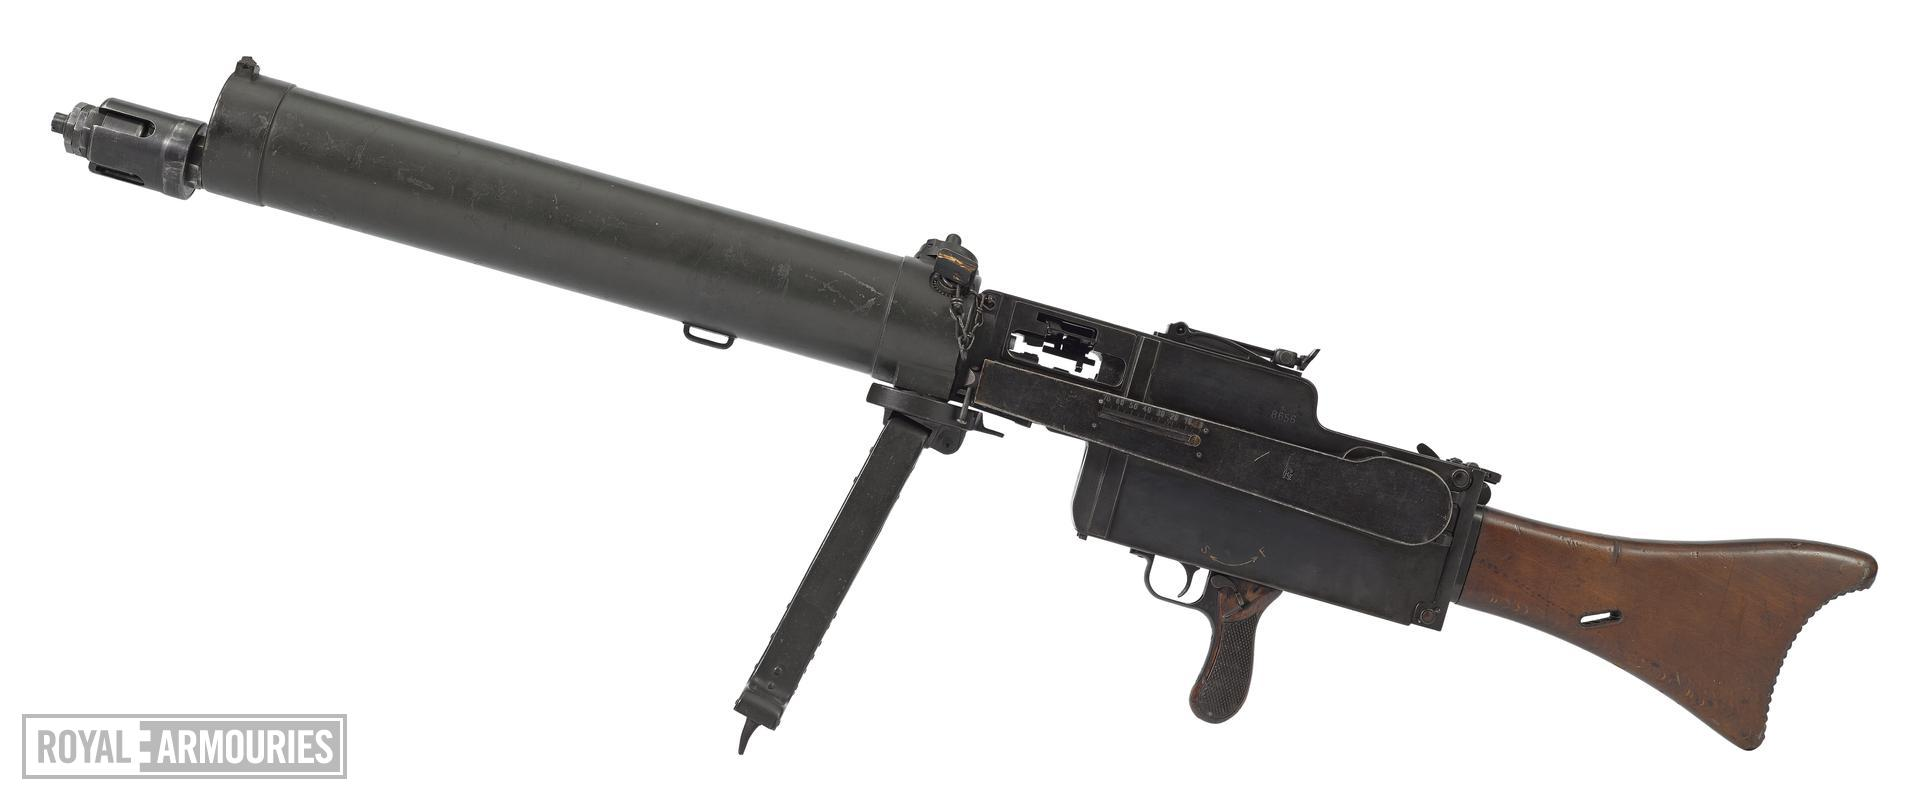 Maxim MG 08/15 recoil operated/toggle lock light machine gun, various manufacturers, Germany, 1918.